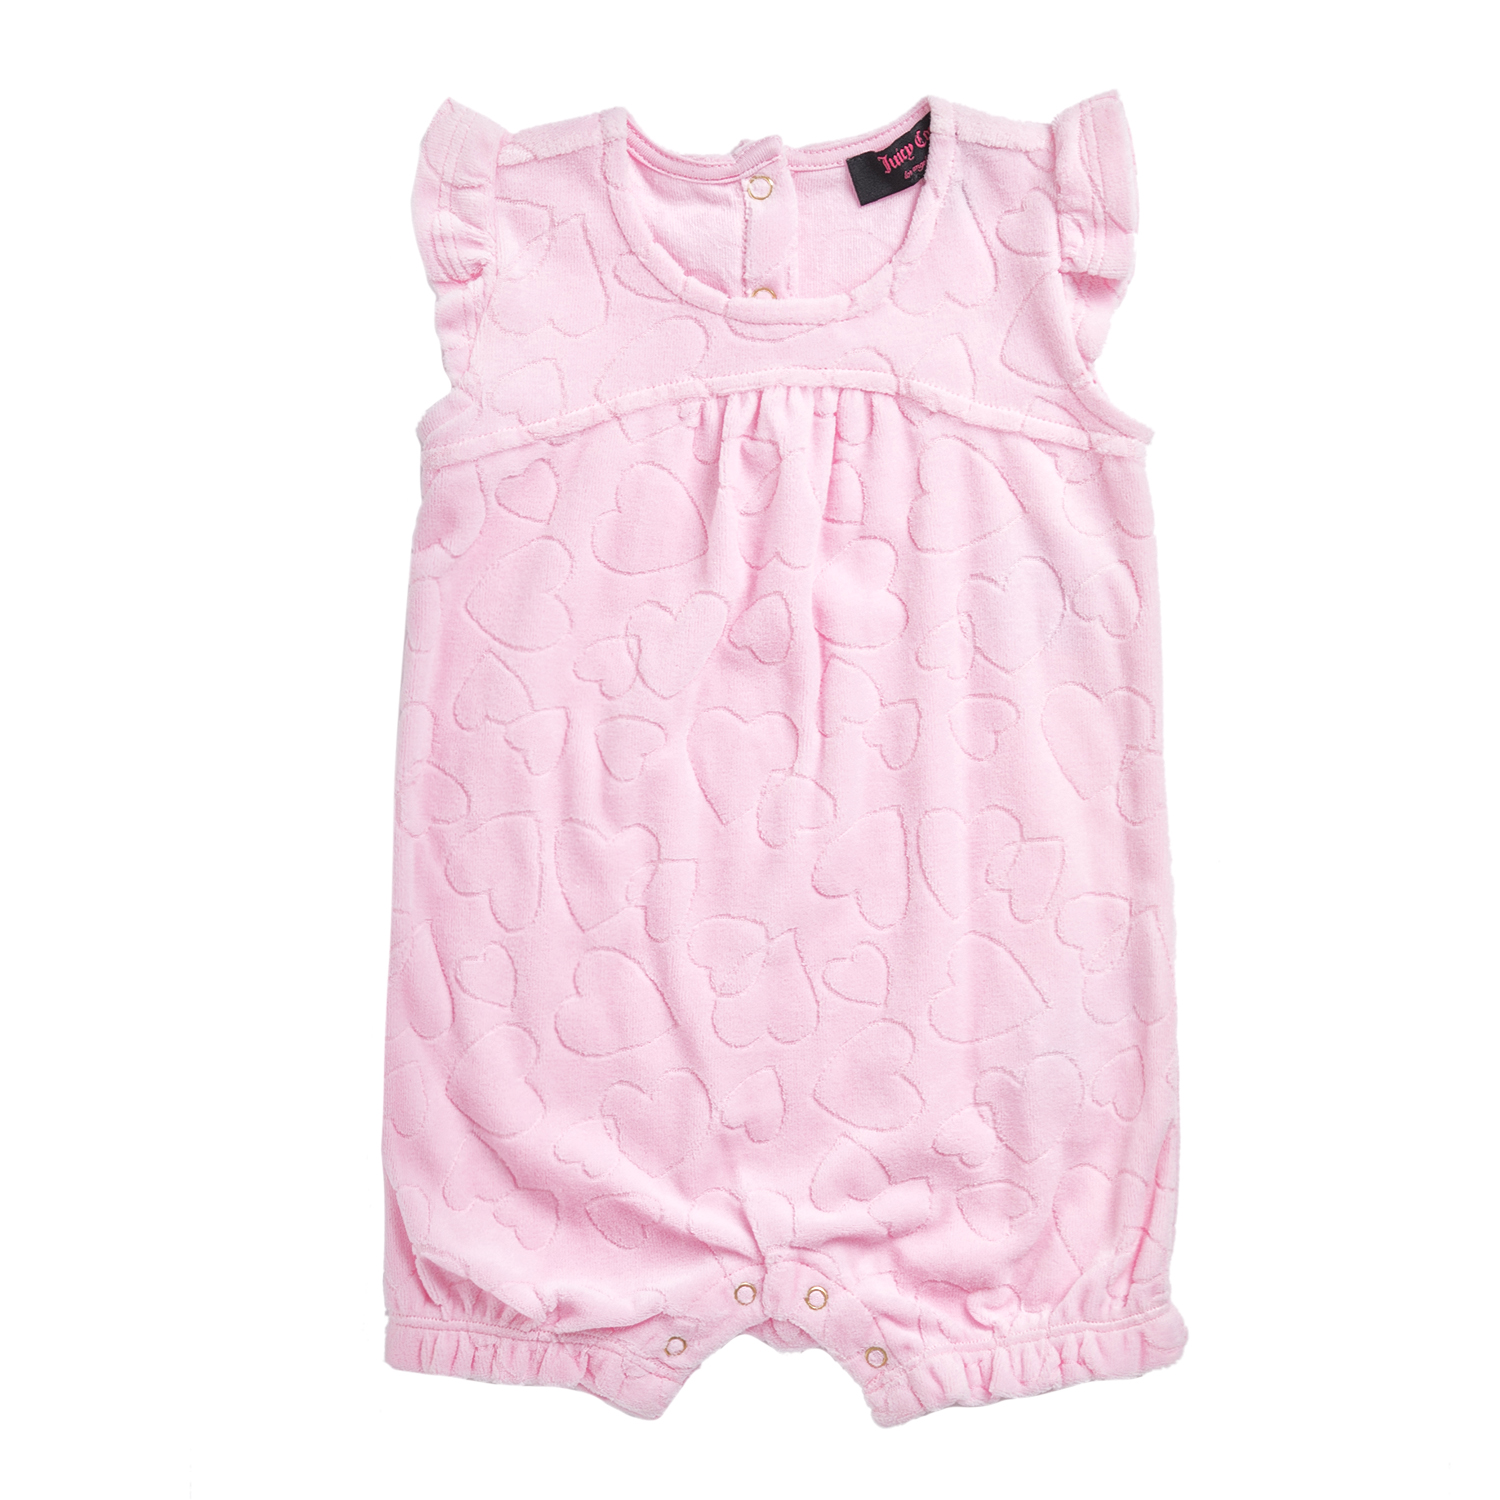 12a6f603c9c2 JUICY COUTURE KIDS – Φορμάκι JUICY COUTURE LINKING HEARTS ροζ